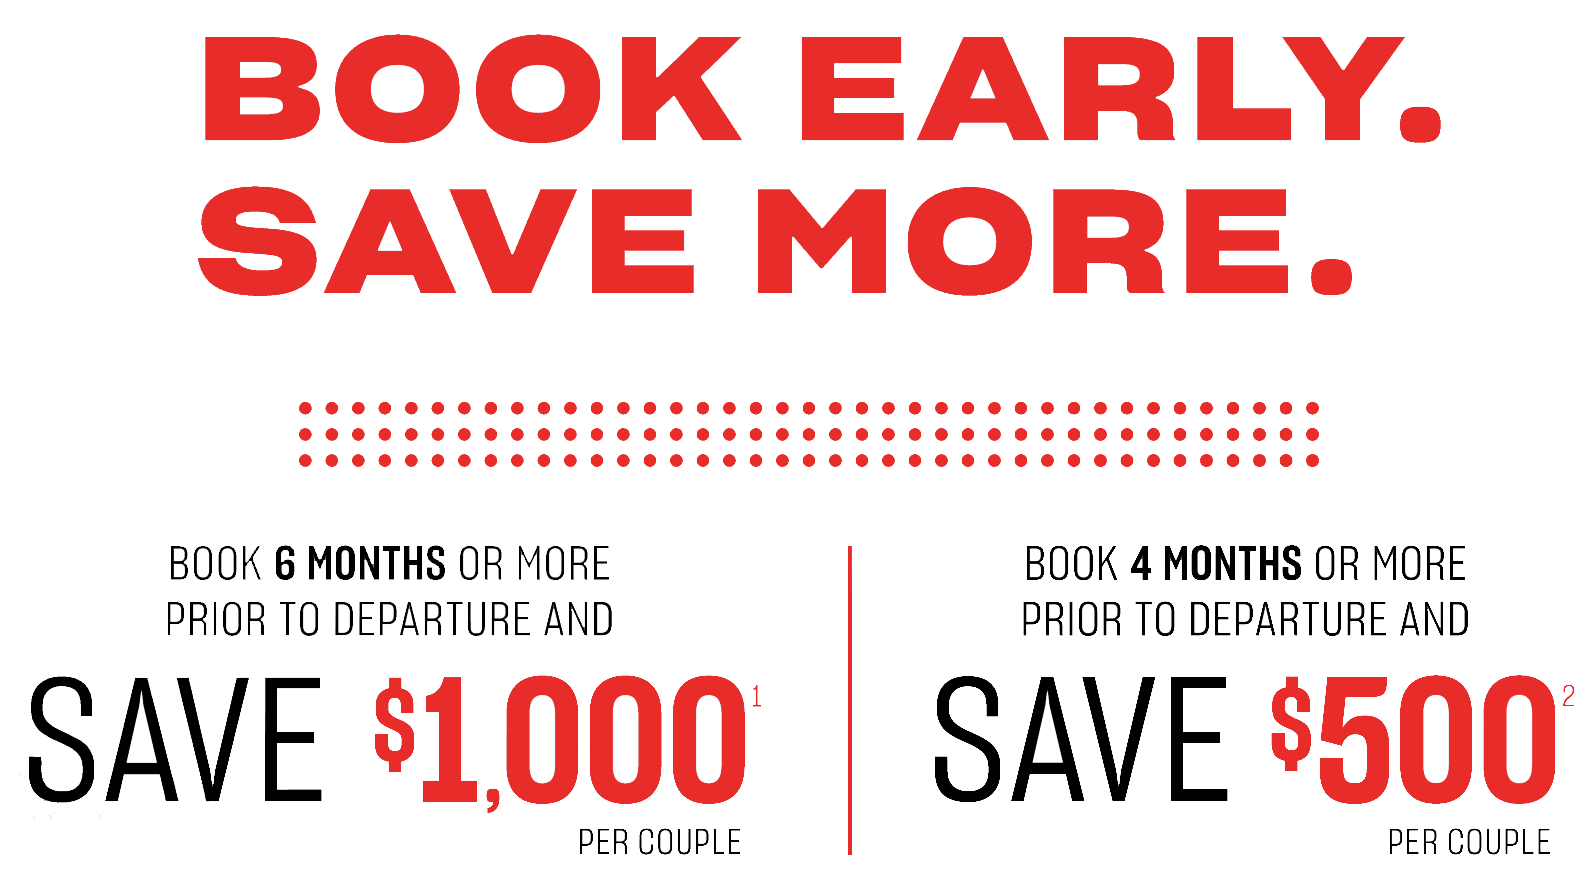 Book early - save more. Book 6 months or more prior to departure and save $1,000 per couple*. Book 4 months or more prior to departure and save $500 per couple*.